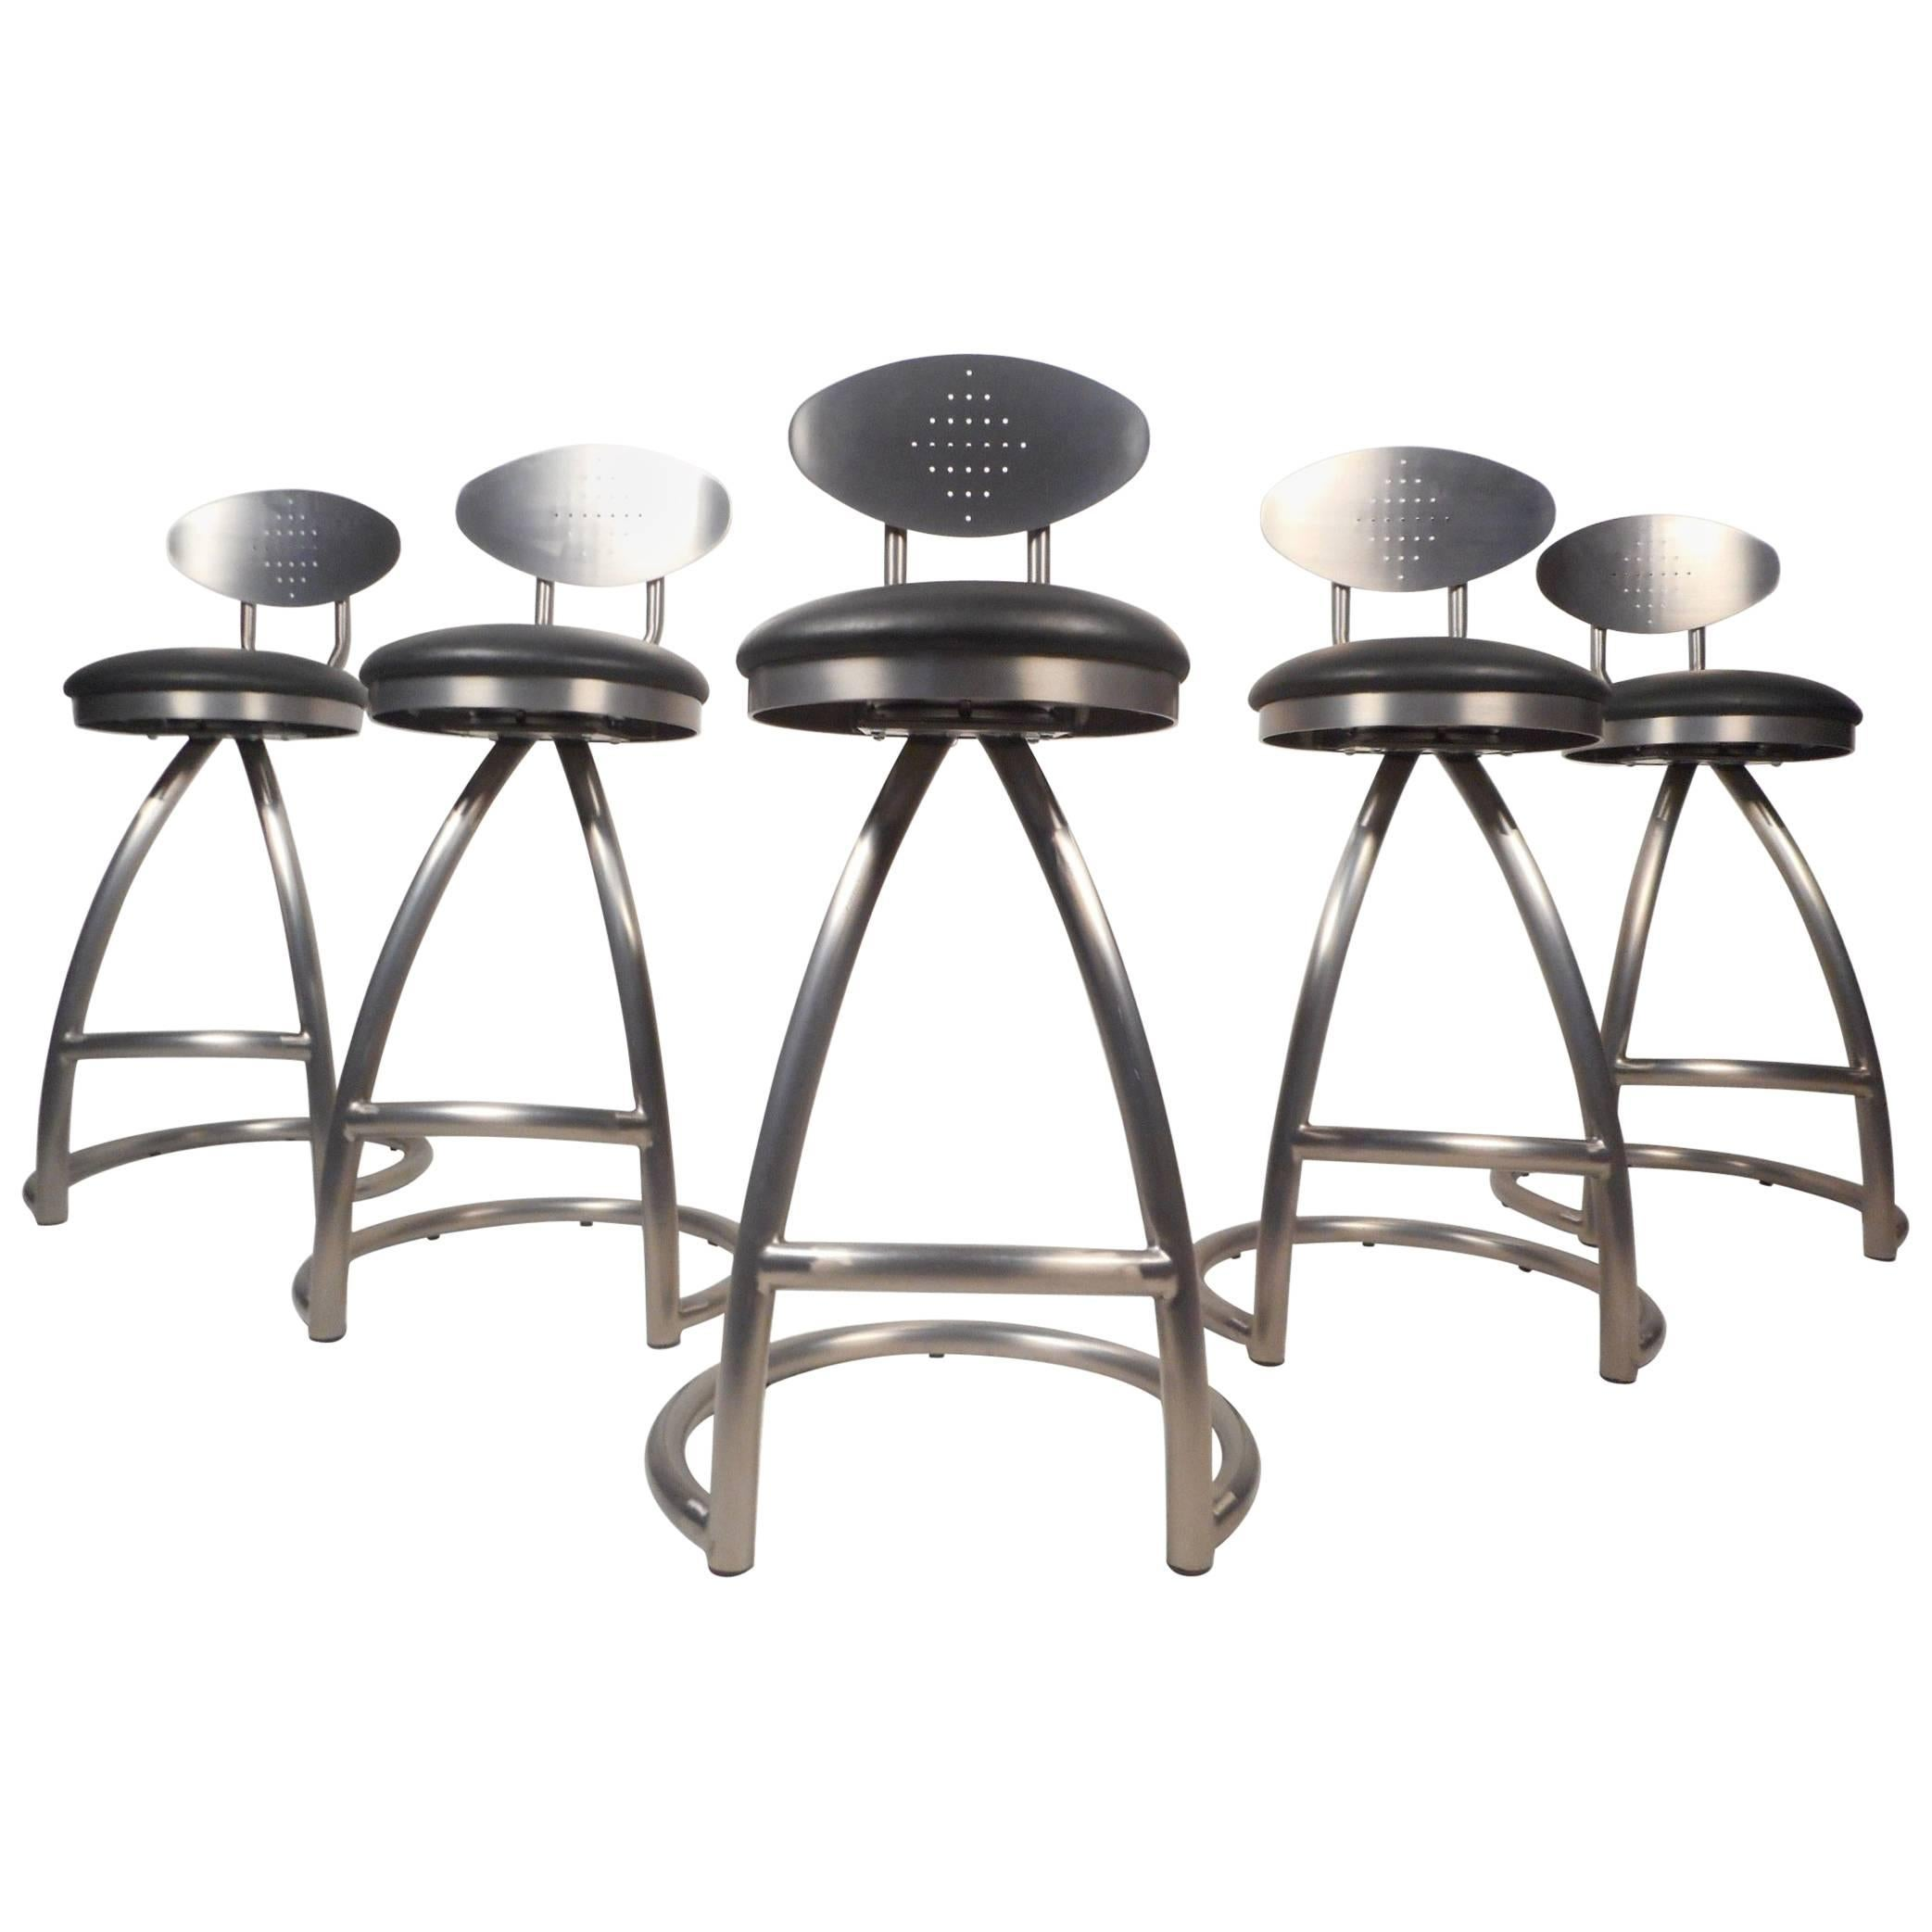 Set Of Five Contemporary Modern Industrial Style Bar Stools For Sale